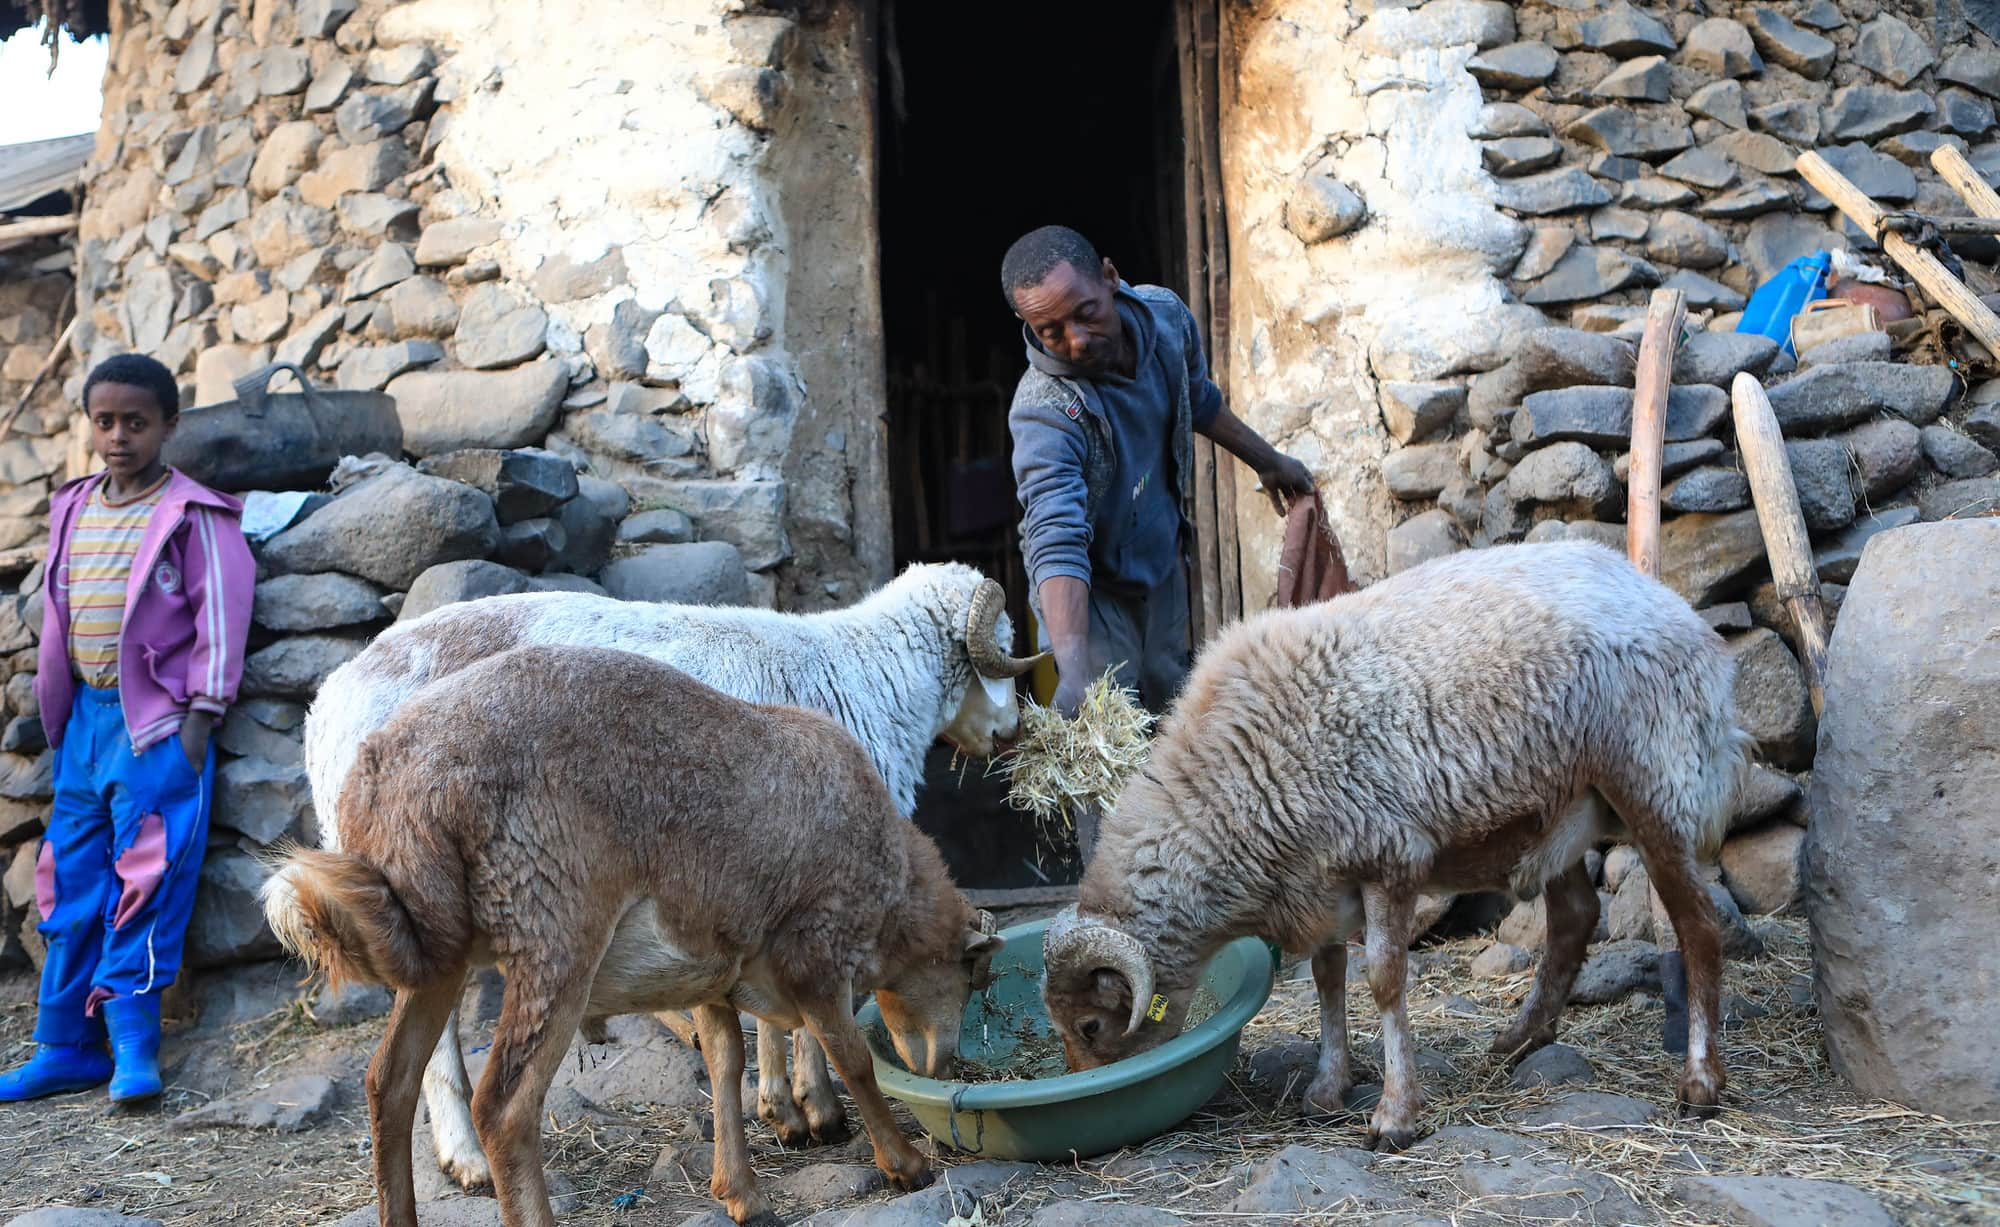 17 Sustainable Animal Productivity for Livelihoods, Nutrition and Gender Inclusion (SAPLING)